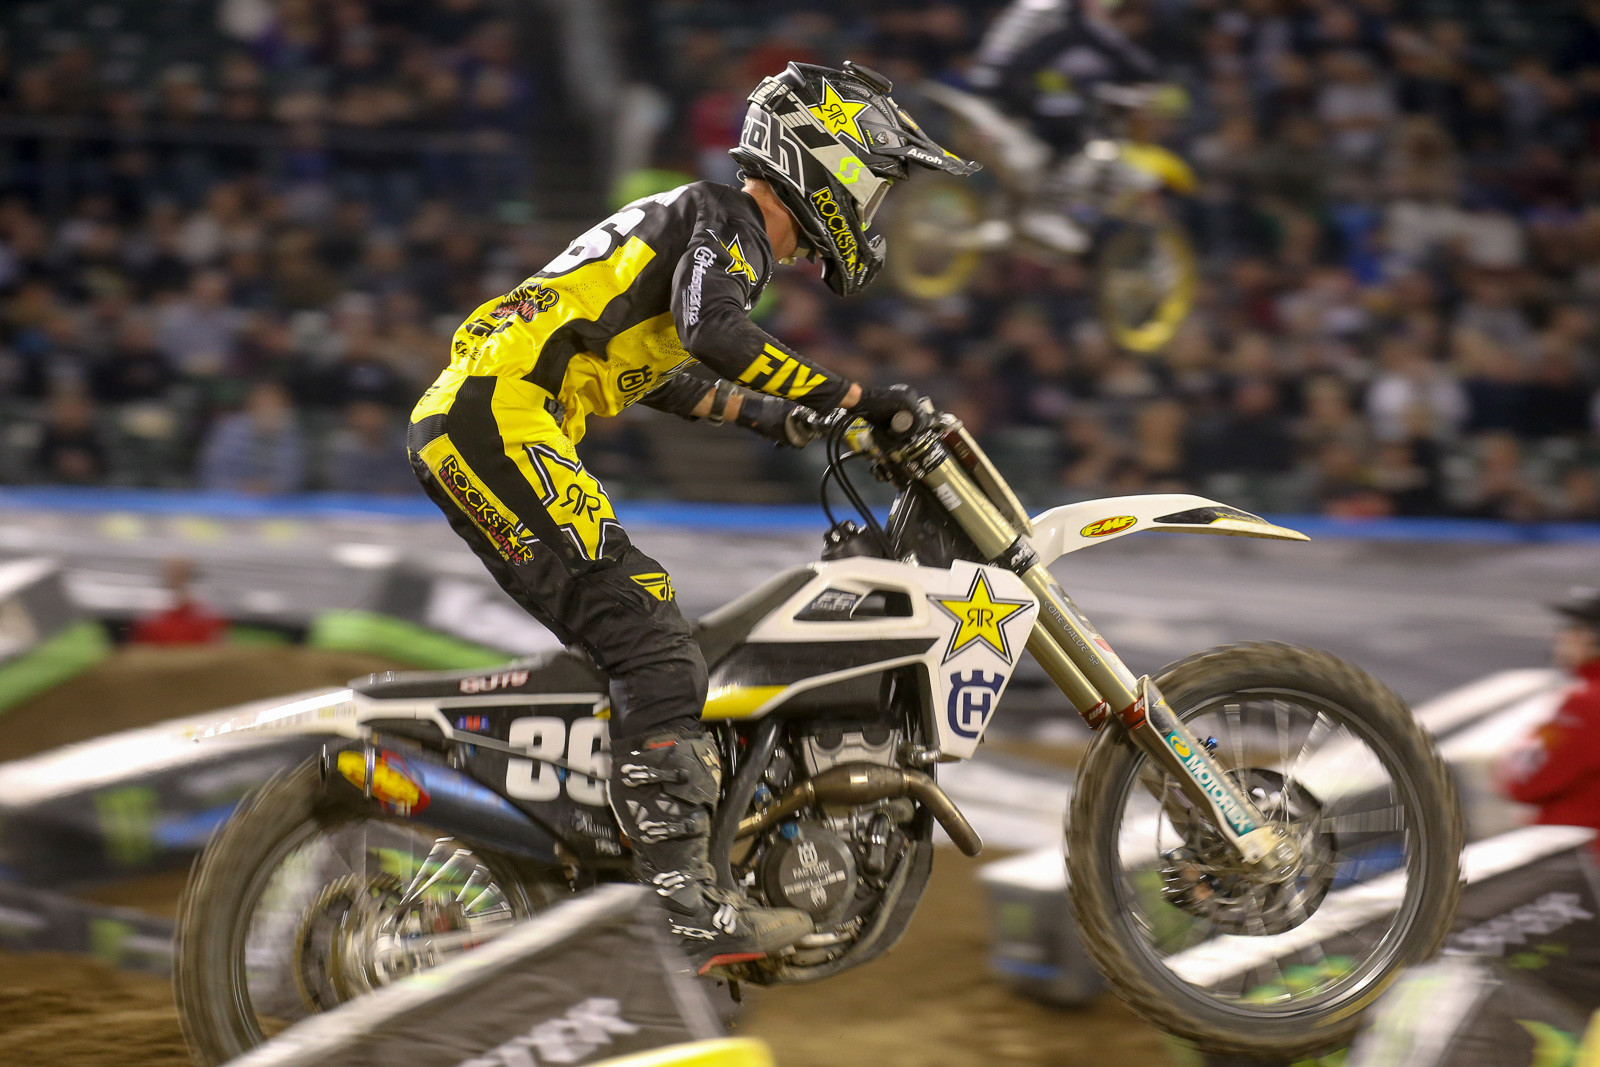 Michael Mosiman was seventh in the 250 main this weekend, and he gave us the inside scoop on his season so far. Click play on the audio clip below to hear from him.